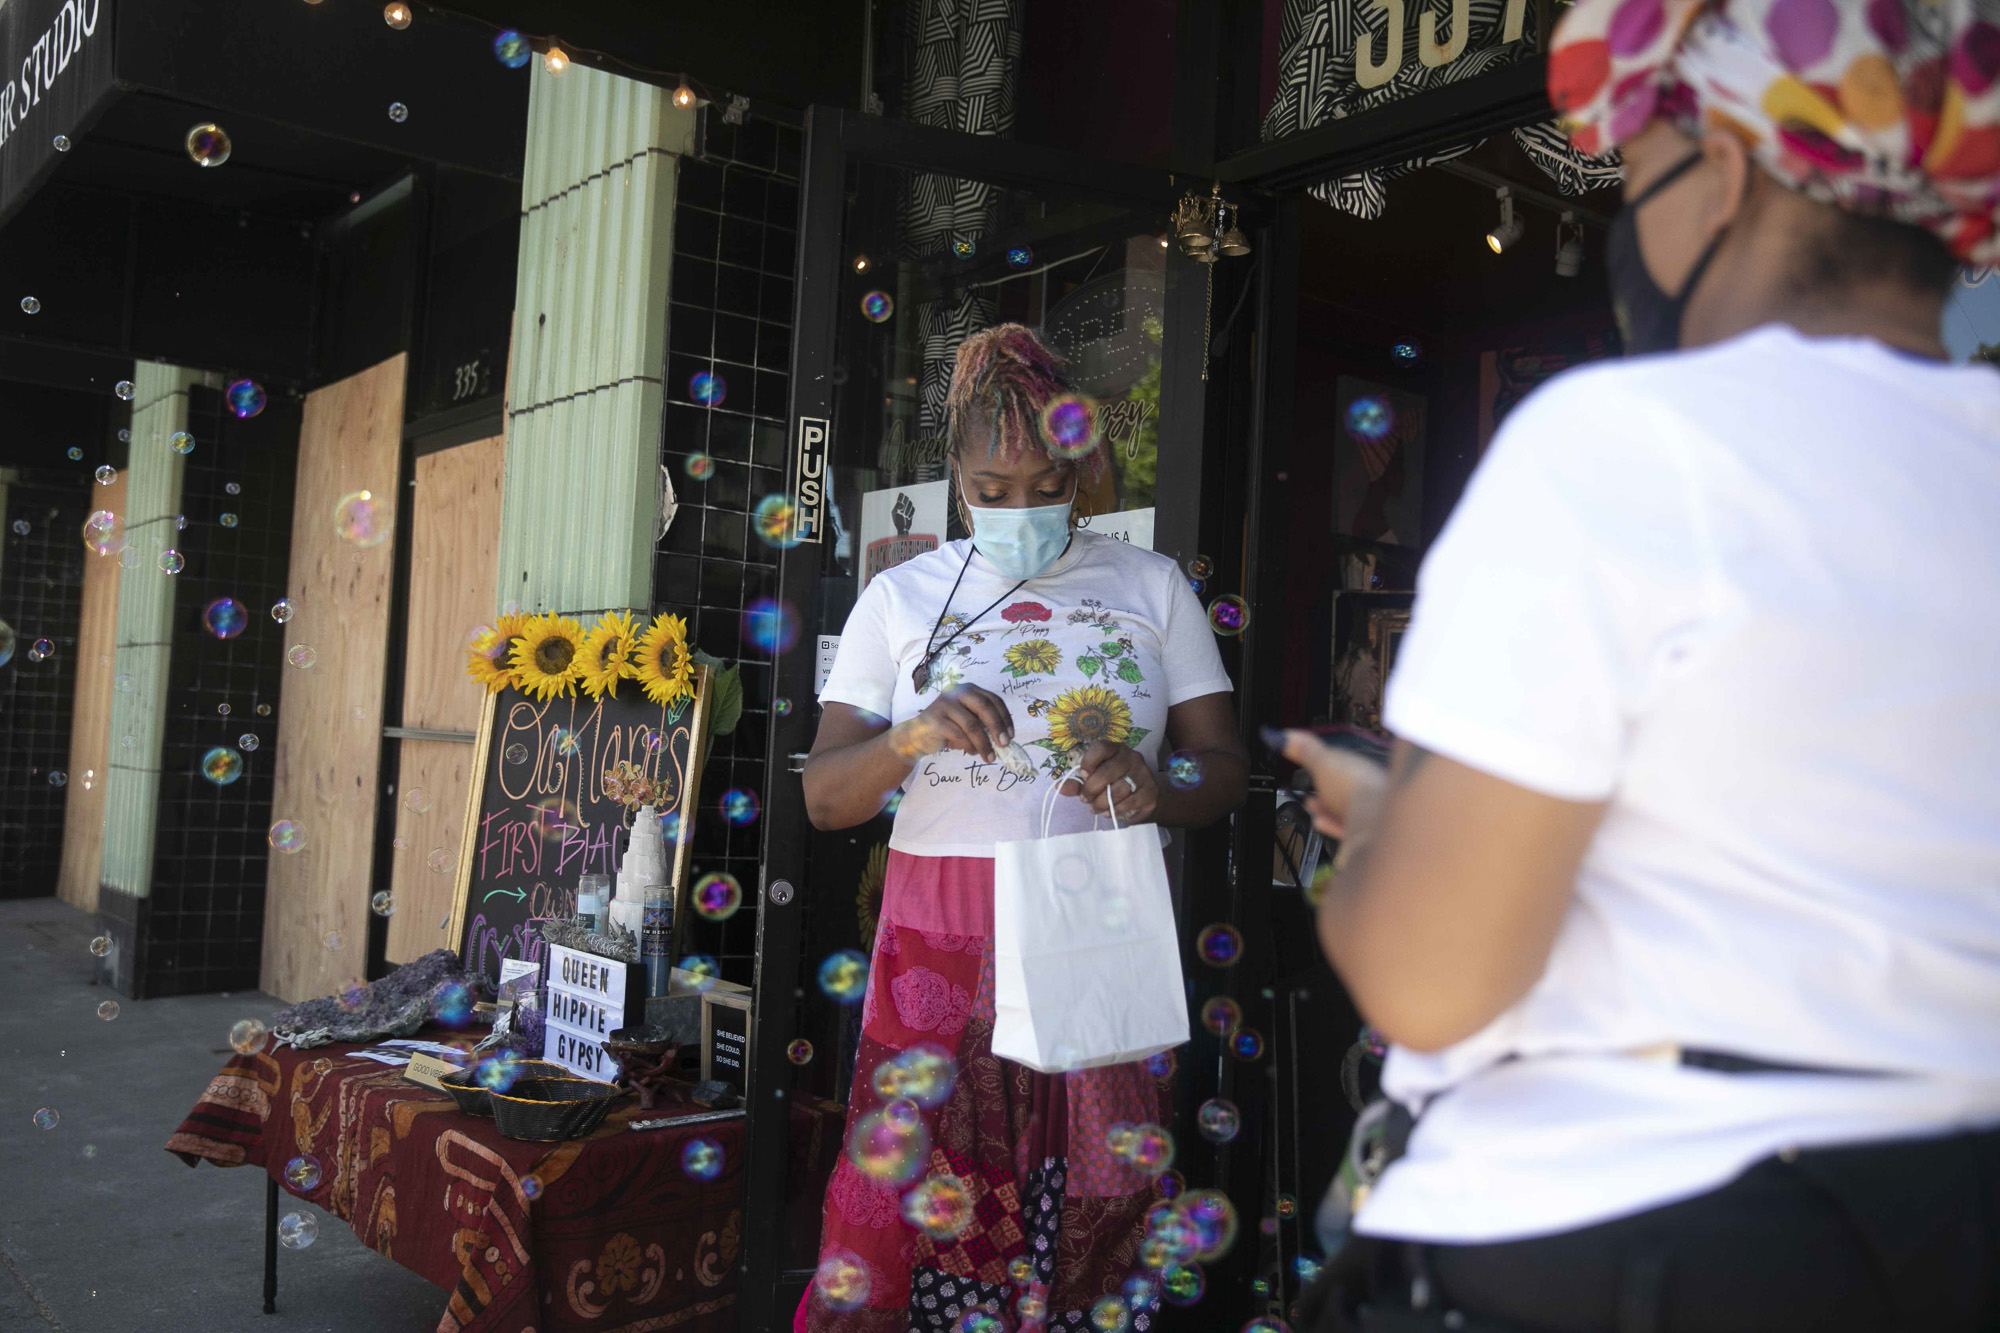 Lilly Ayers places a stick of sage in a bag while serving a customer at her store Queen Hippie Gypsy in downtown Oakland. All of the small businesses on Ayers' block were damaged during California protests over the killing of George Floyd Minneapolis police.. Photo by Anne Wernikoff for CalMatters